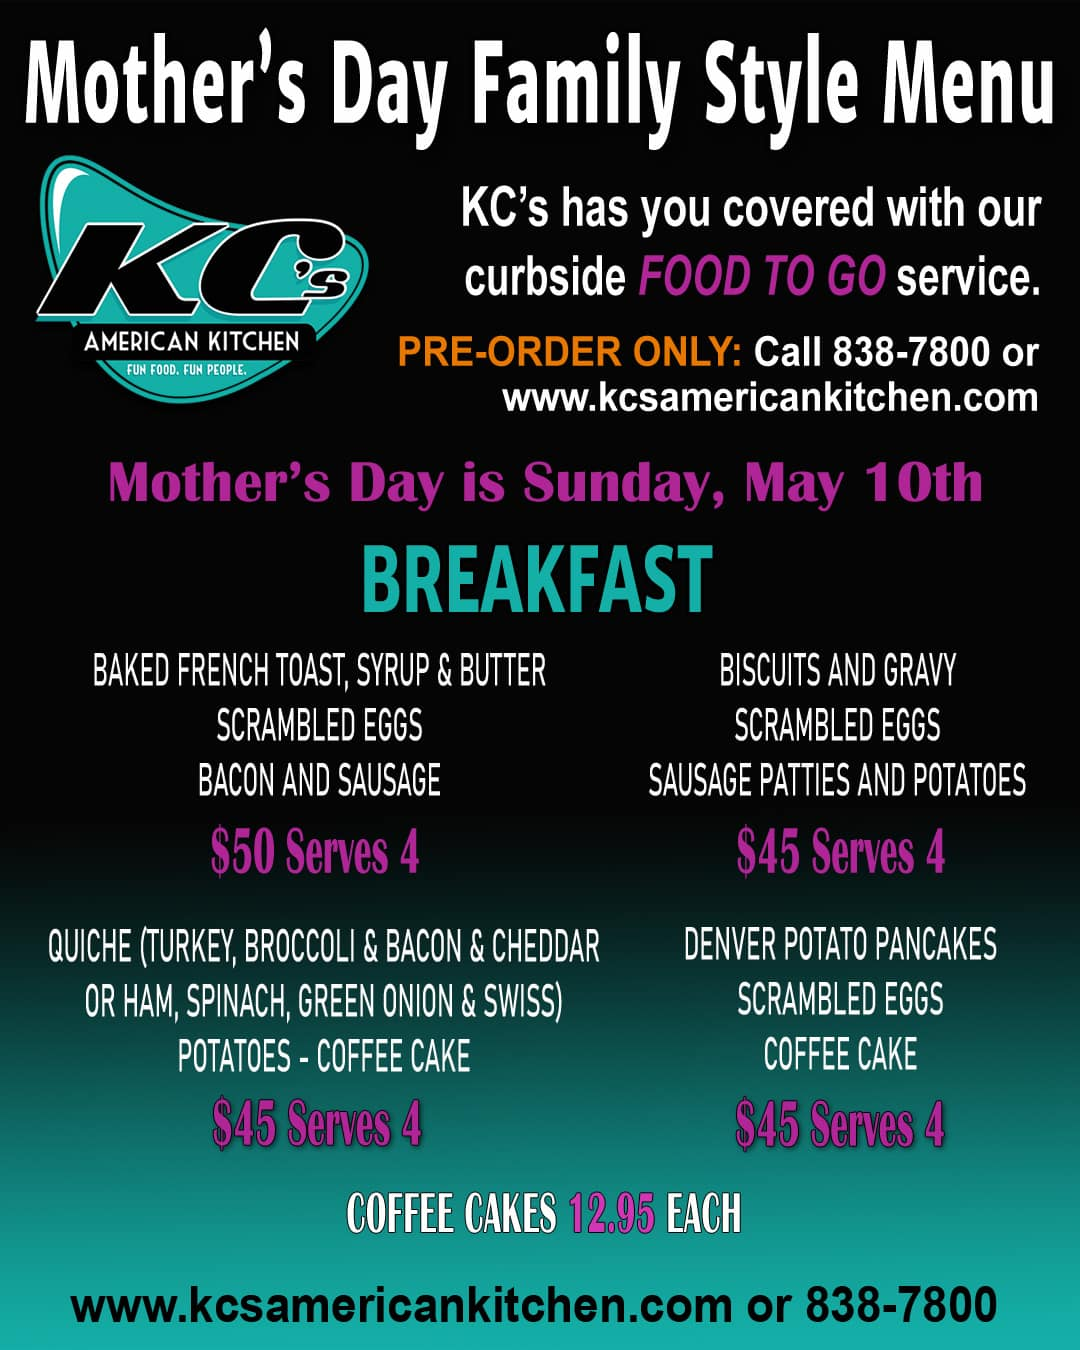 Mother's Day breakfast to go at KC's American Kitchen in Windsor, CA.